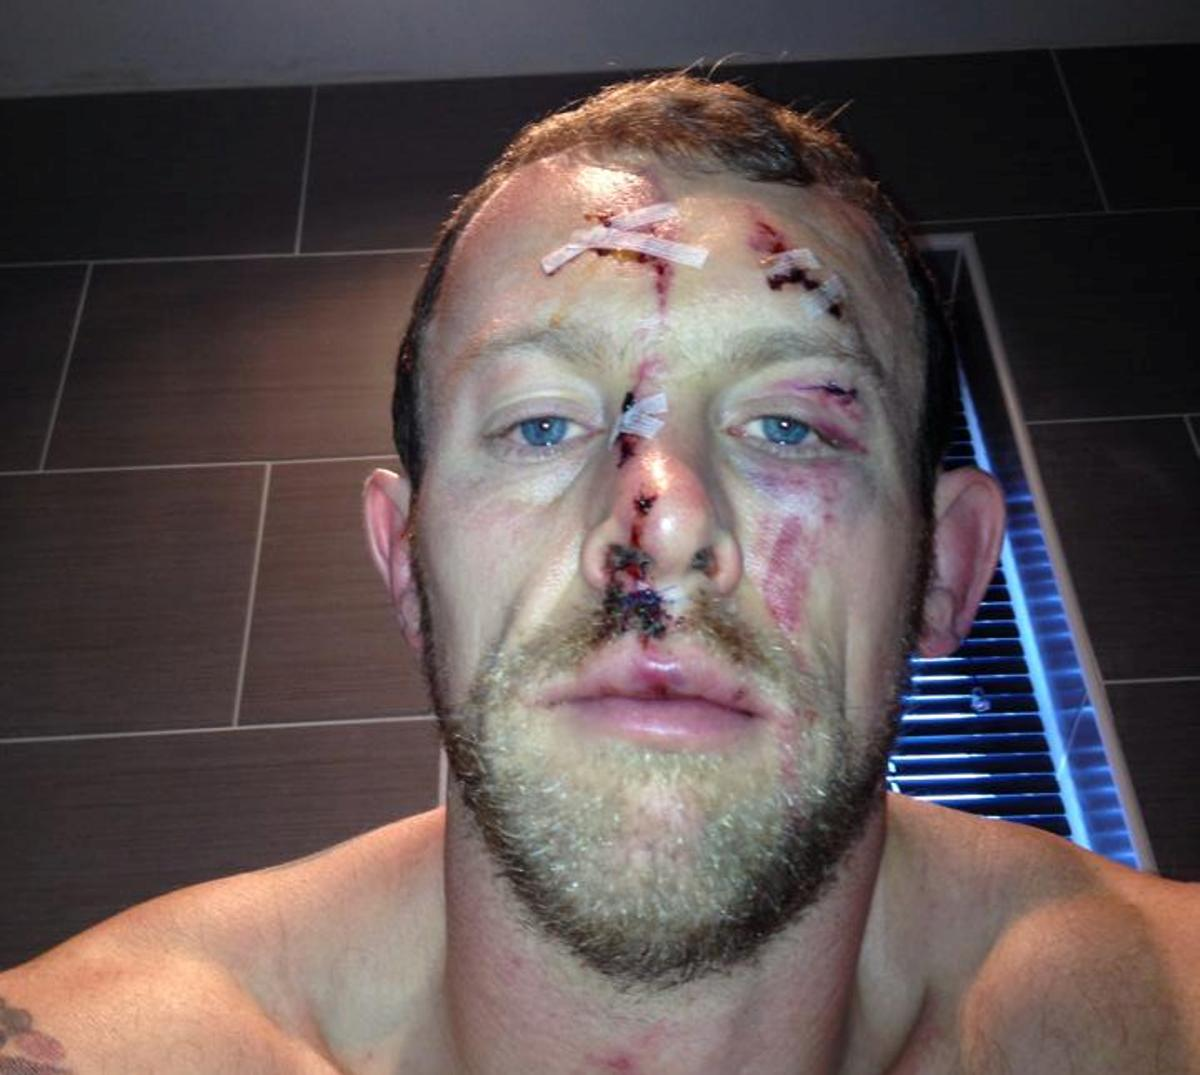 UPDATED: Micky Higham's war wounds, before and after stitches